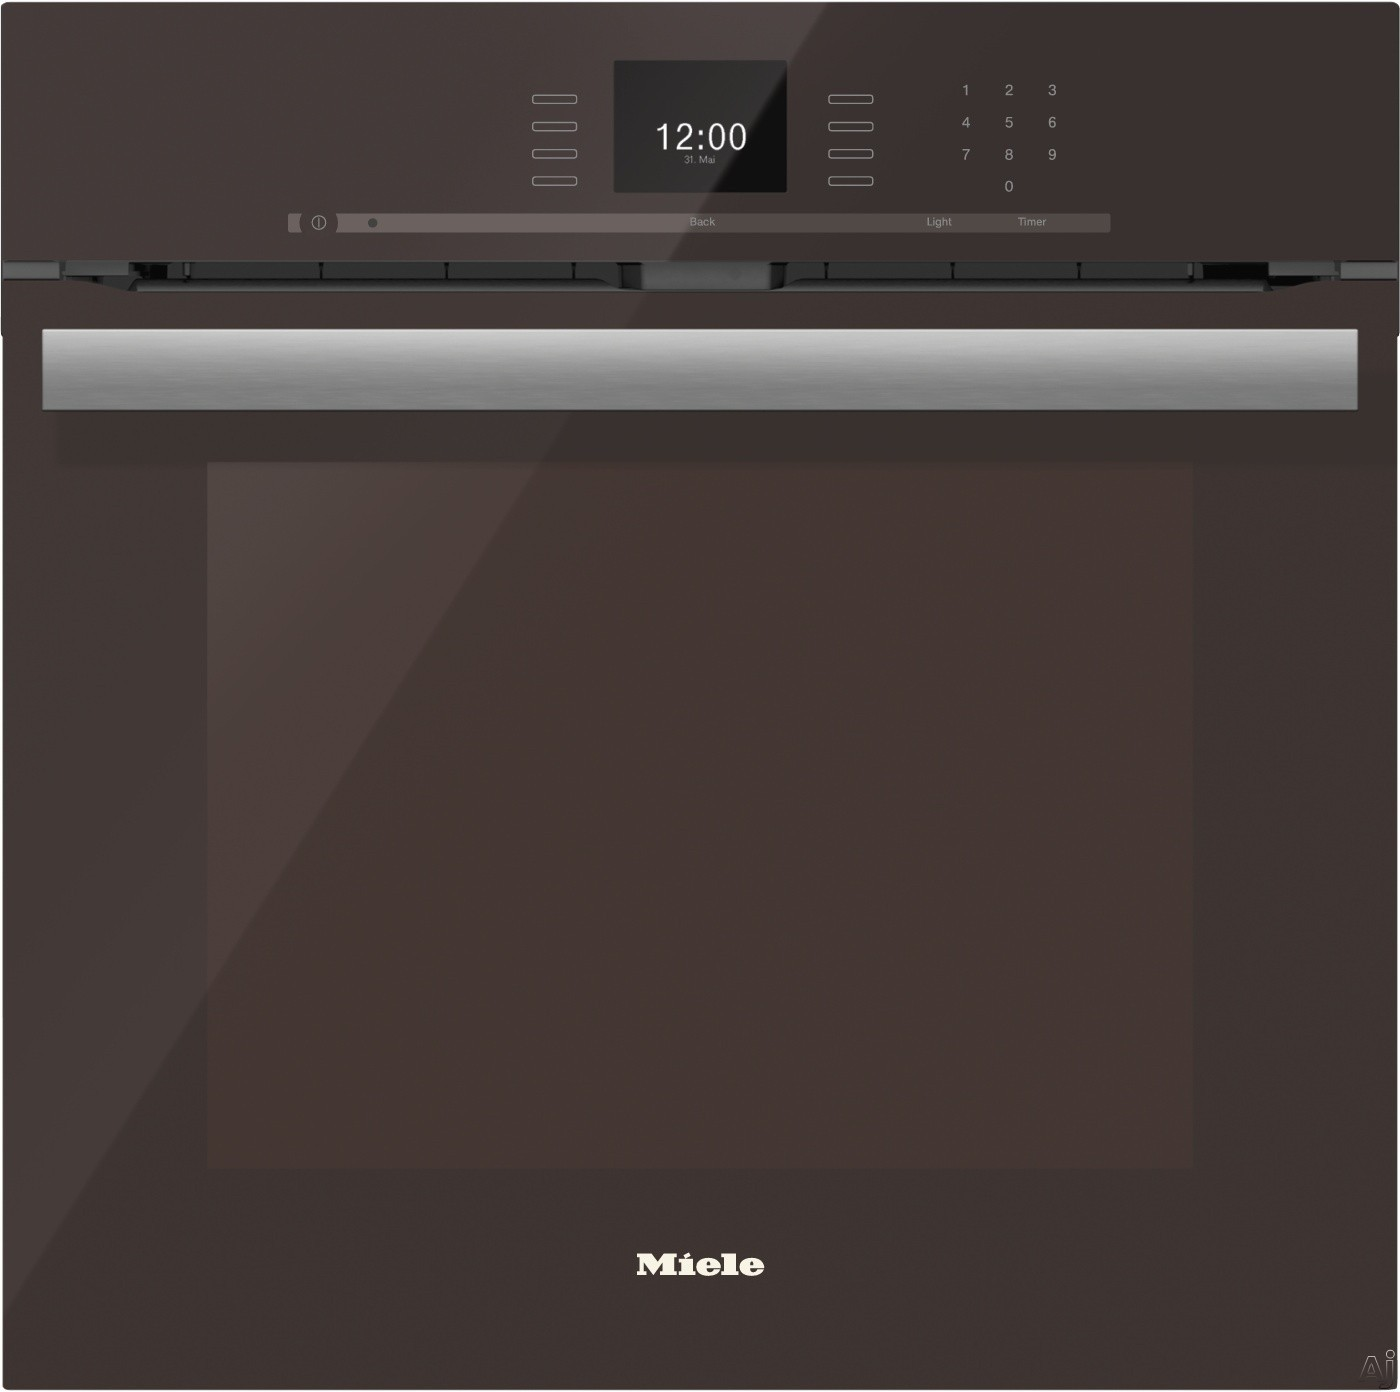 Miele PureLine SensorTronic Series H6660BPHVBR 24 Inch Single Electric Wall Oven with Convection Cooking, Self Cleaning Mode, SensorTronic Controls, MasterChef Programs, Temperature Probe, PerfectClea